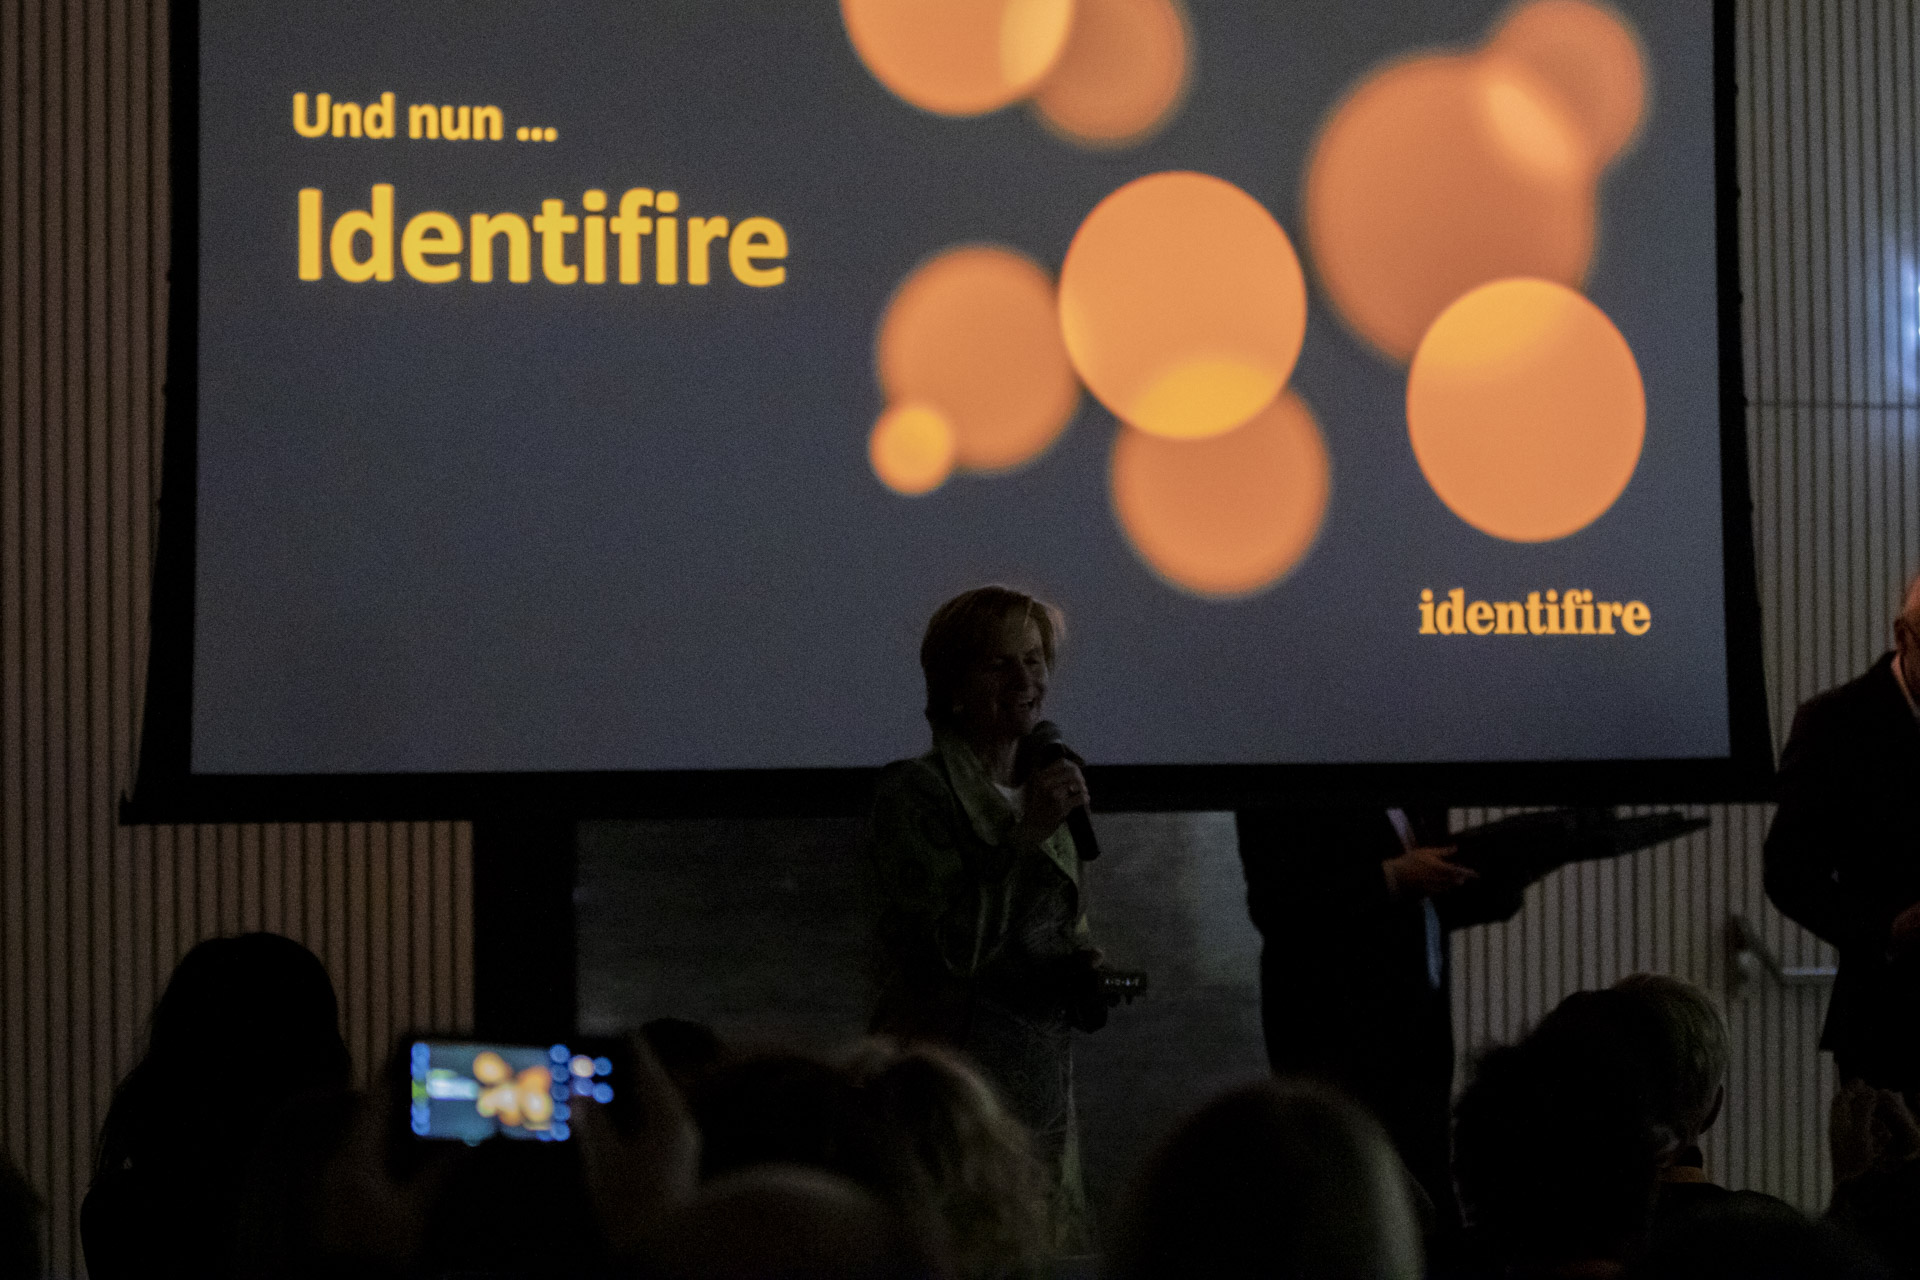 identifire corporate culture club vortrag